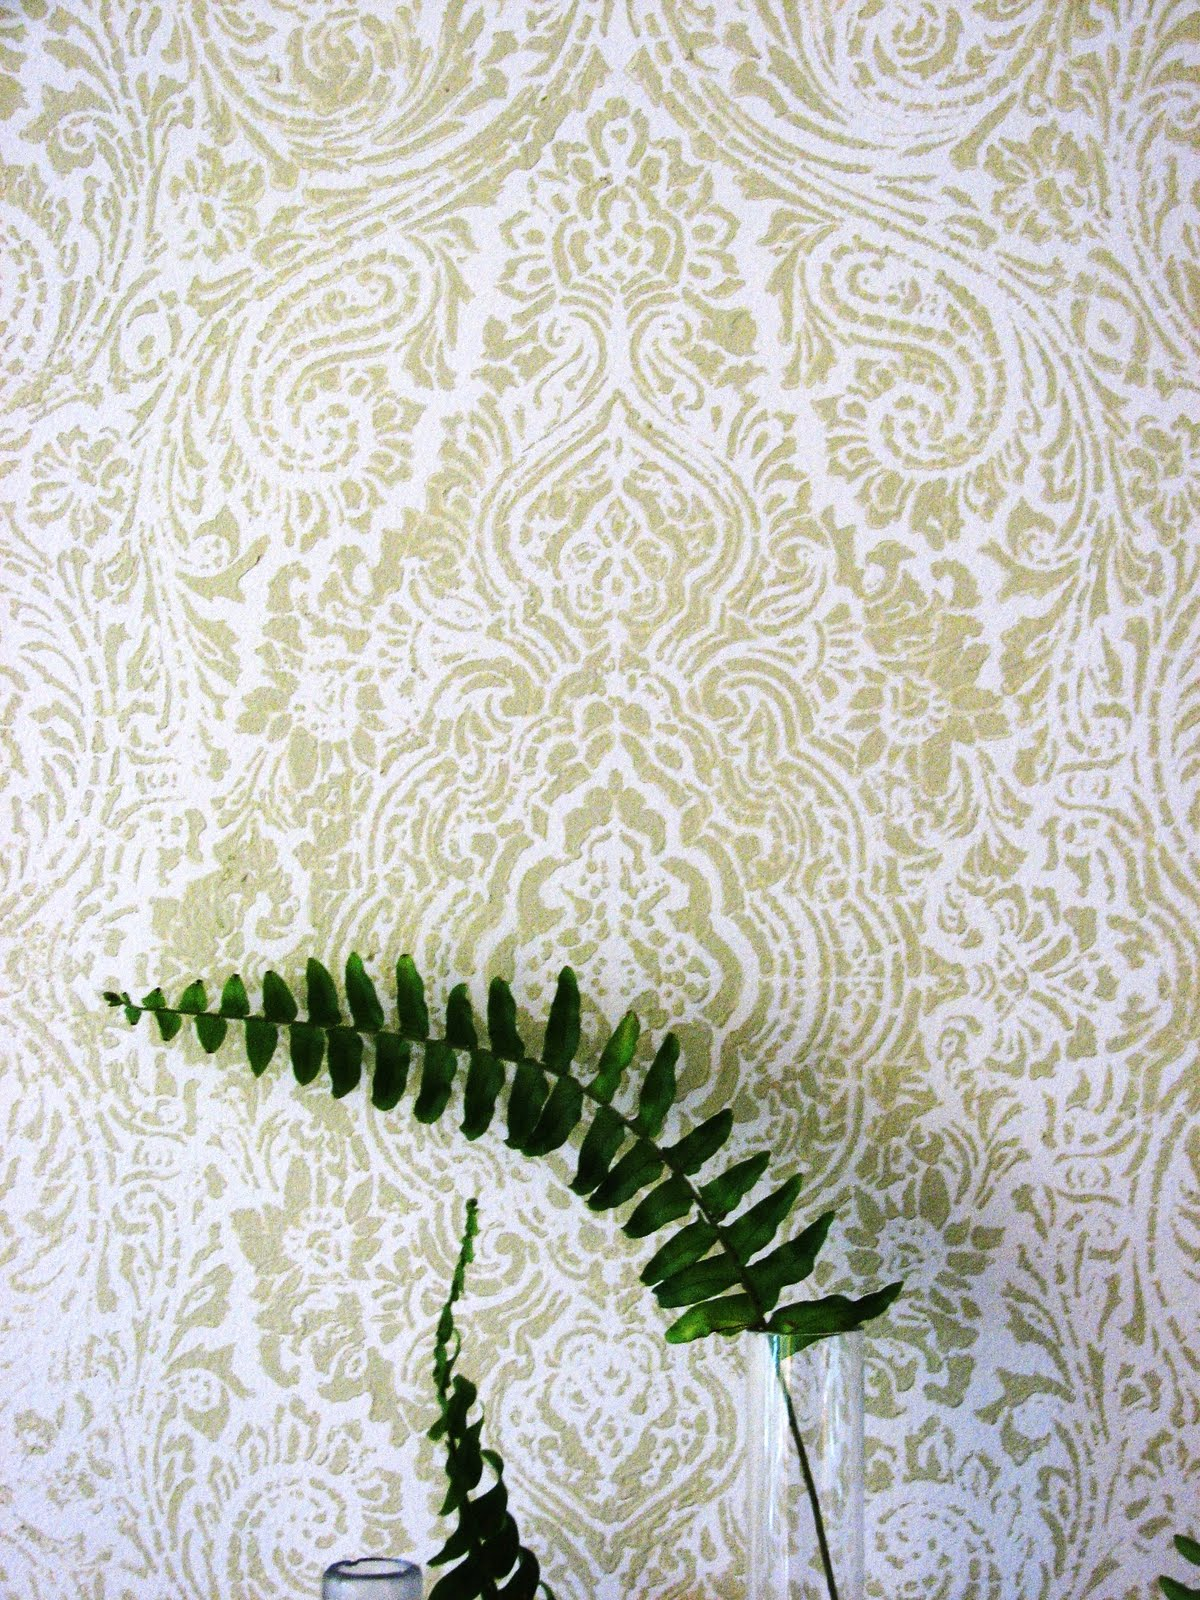 Well my sweet husband finished the LR wallpaper stenciling this weekend!